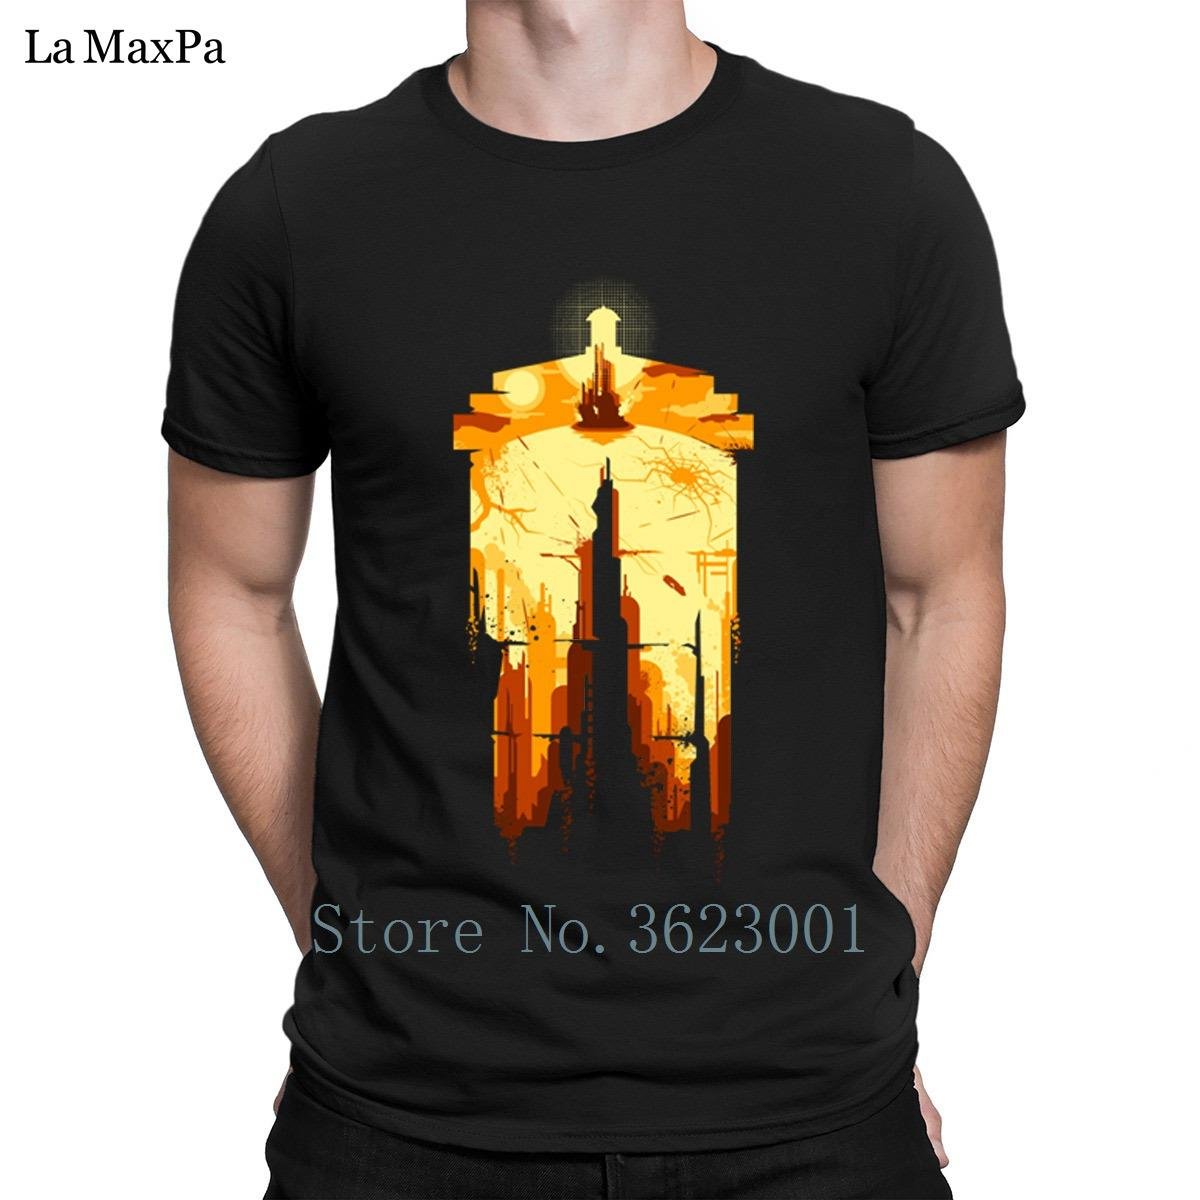 a372aa95ce Create Classic T Shirt For Men Time War T Shirt Man Basic Tee Shirt  Humorous Men Tshirt Cotton Anti Wrinkle One Day Only T Shirts Limited T  Shirts 24 Hours ...